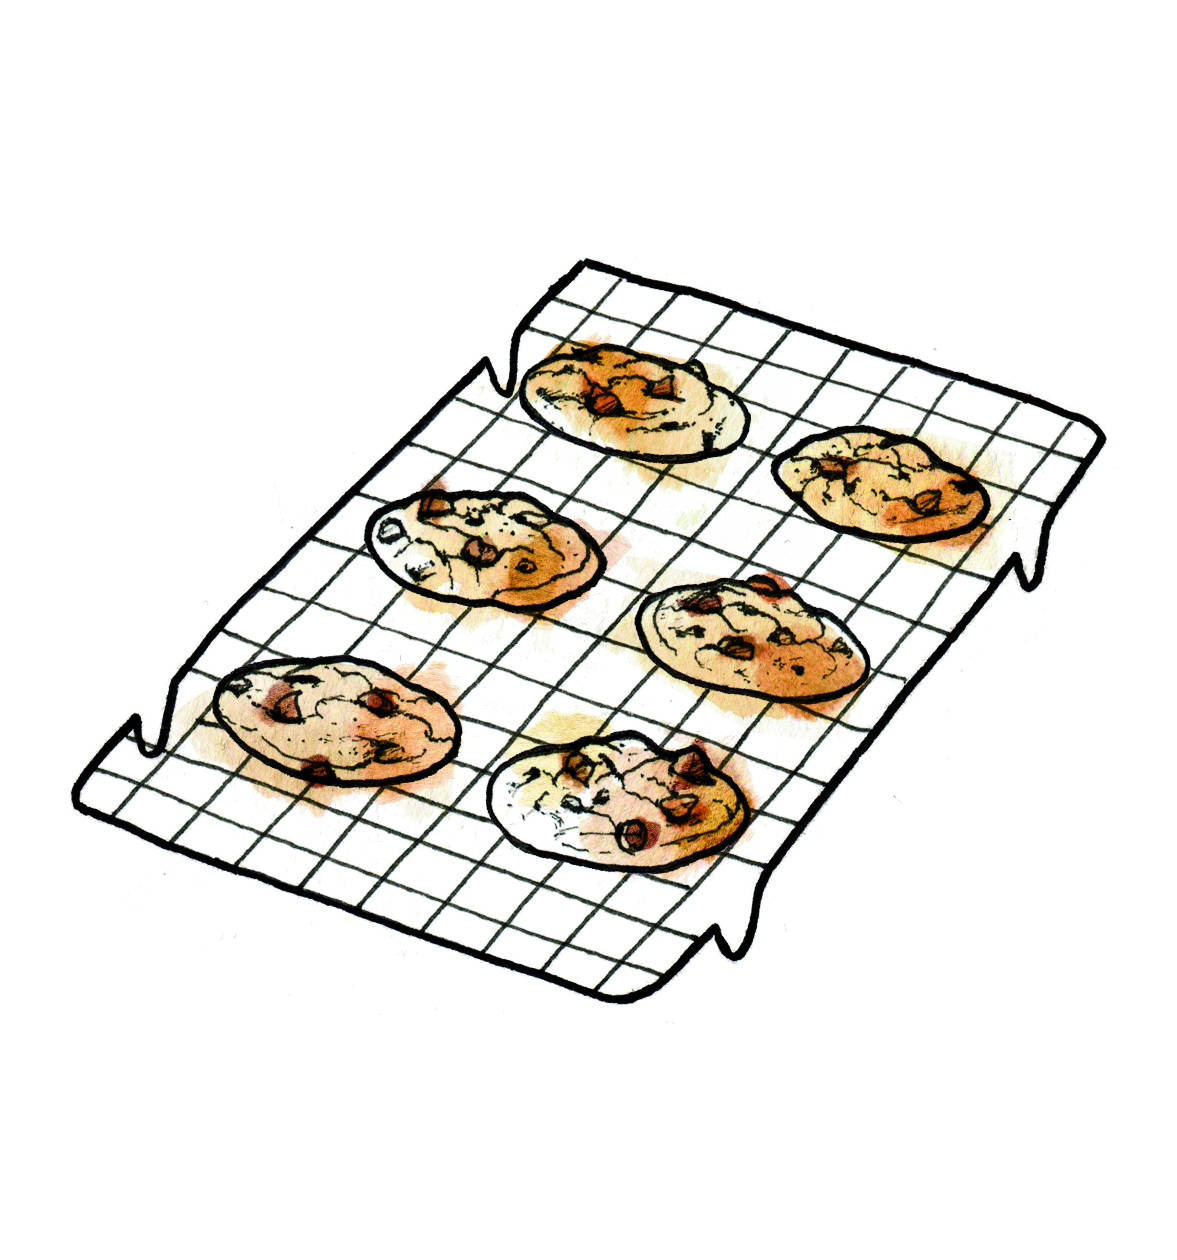 Illustration: cookies on cooling rack